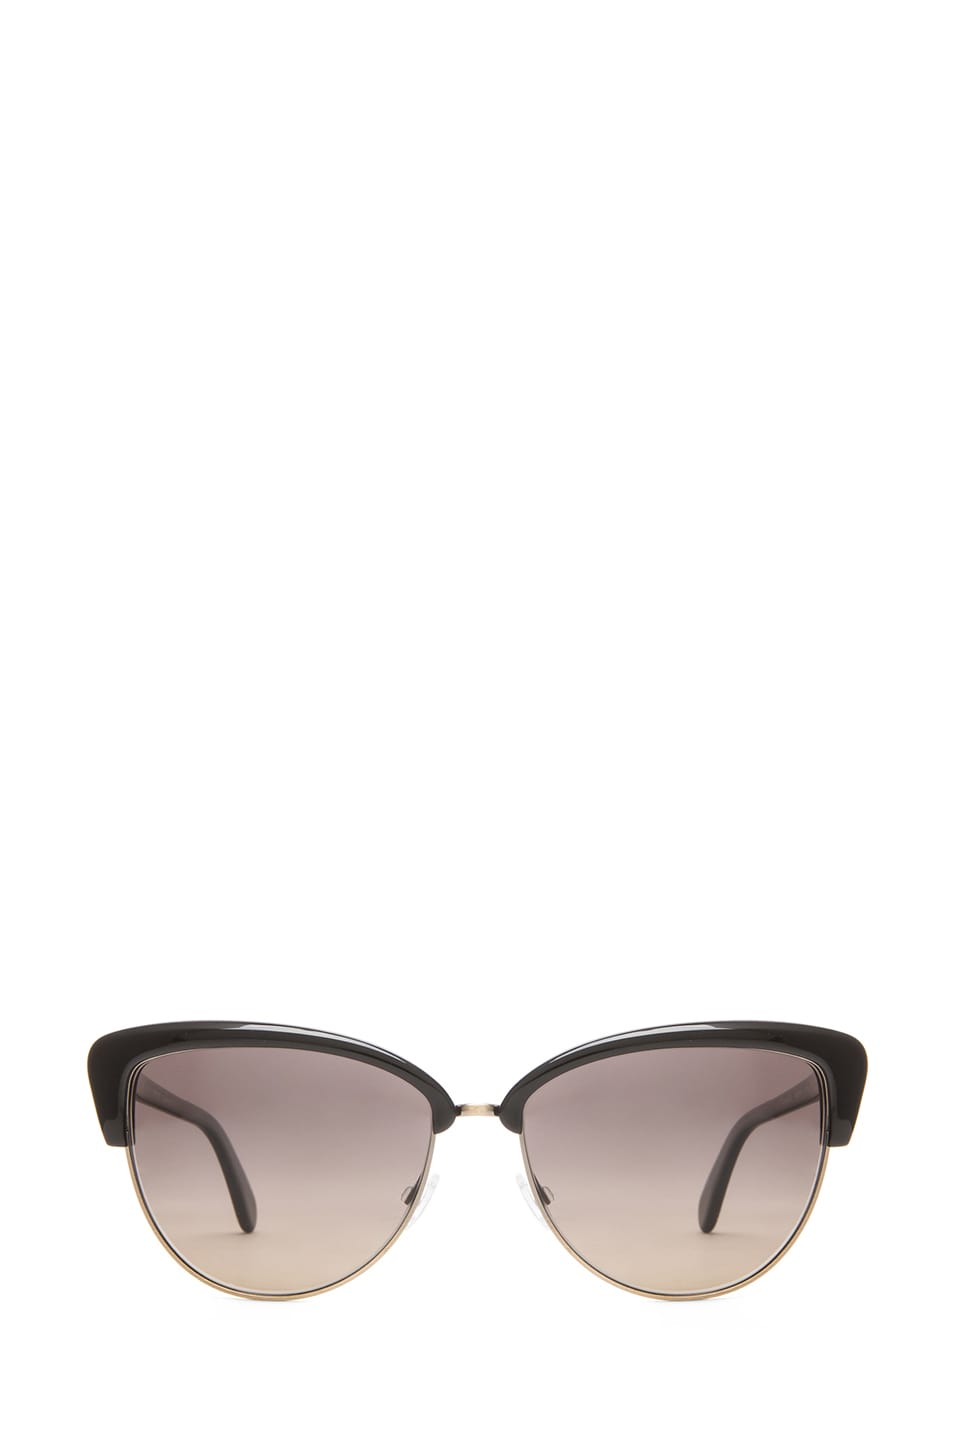 Image 1 of Oliver Peoples Alisha Polarized Sunglasses in Black